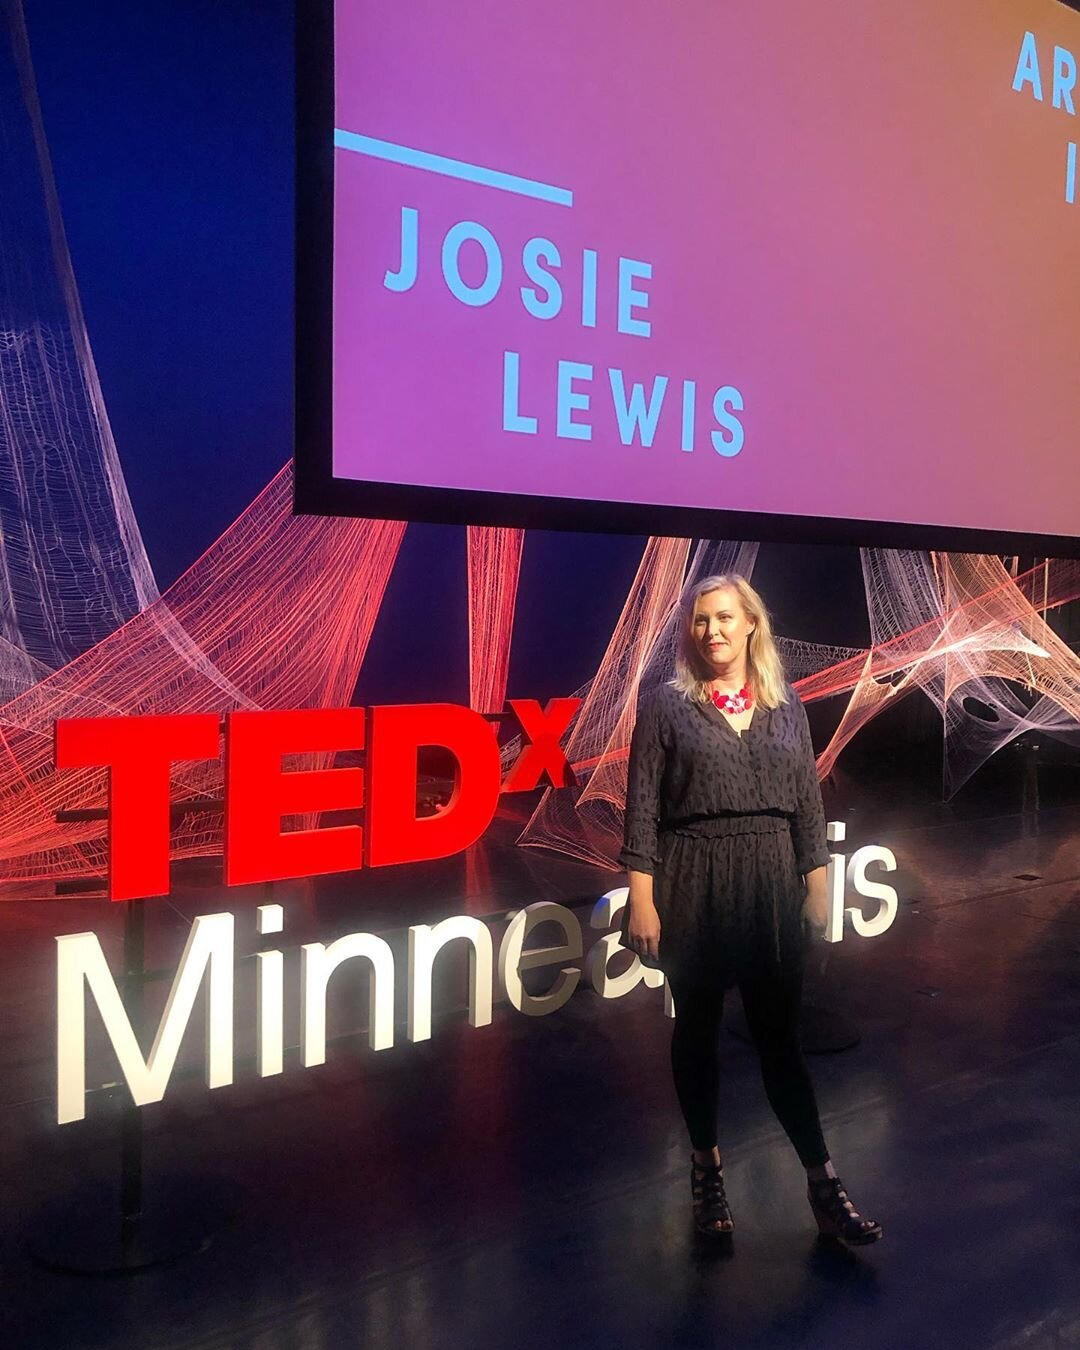 tedx-minneapolis-josie-lewis.jpg